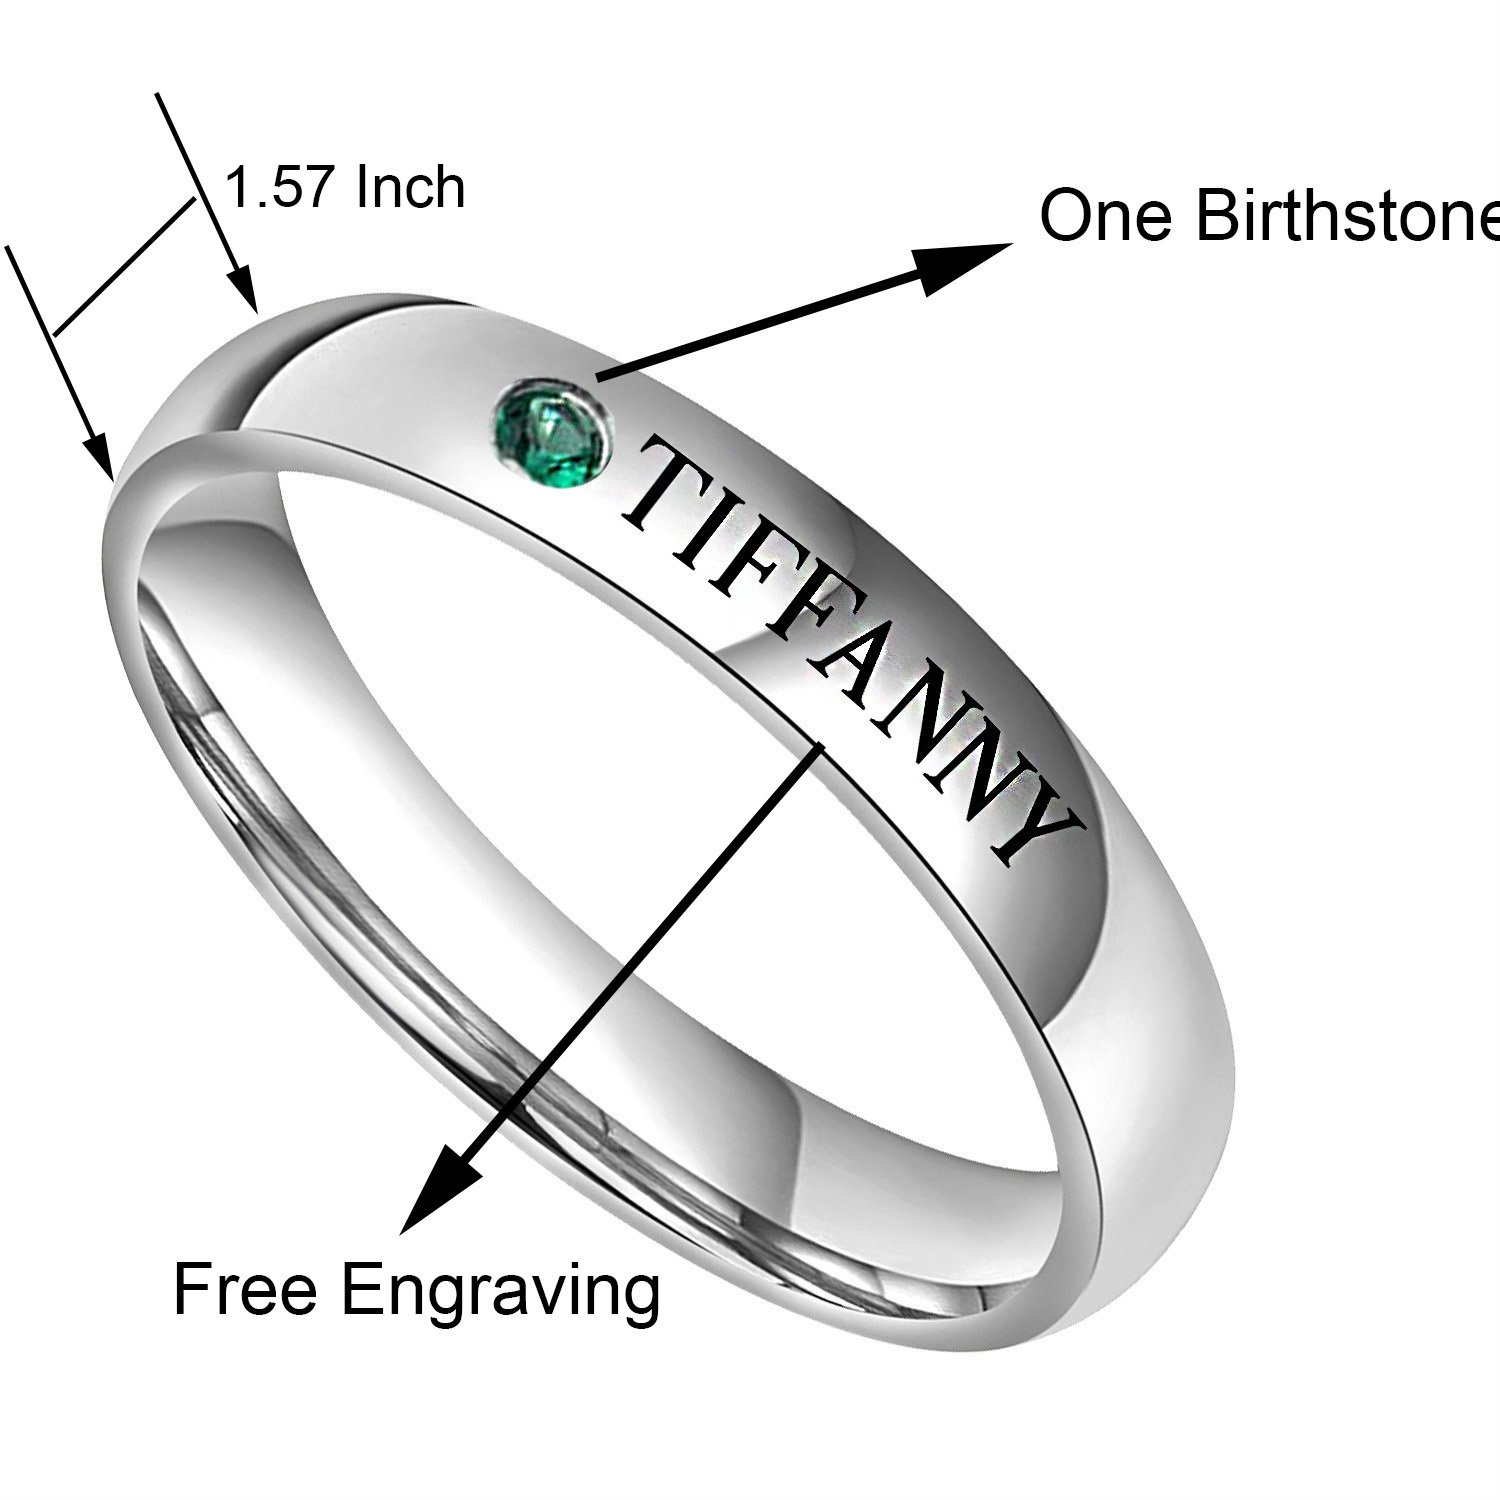 Personalized Rings Birthstone Rings Stacking Rings Name Ring Band Name Rings Stainless Steel 4MM Width Babe King Jewelry